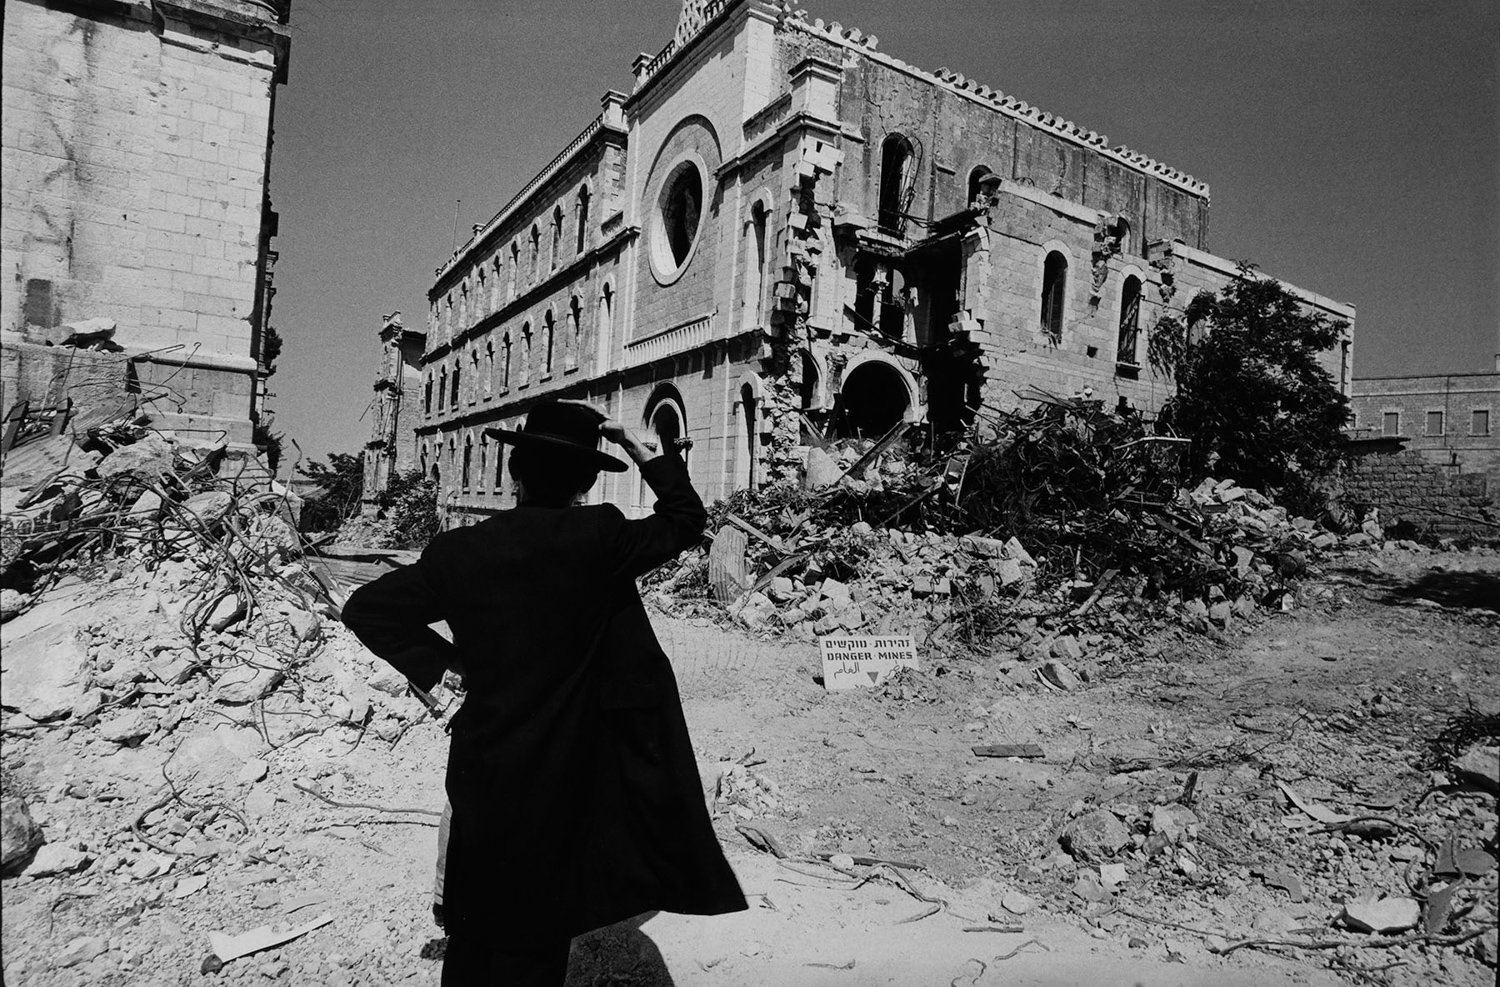 A man looks toward what was then known as 'Notre Dame de France' in Jerusalem, in a 1967 photograph by Leonard Freed. A new exhibition of his work, 'Leonard Freed: Israel Magazine 1967-1968' is on display at the Hebrew Home at Riverdale's Derfner Judaica Museum through Jan. 5.